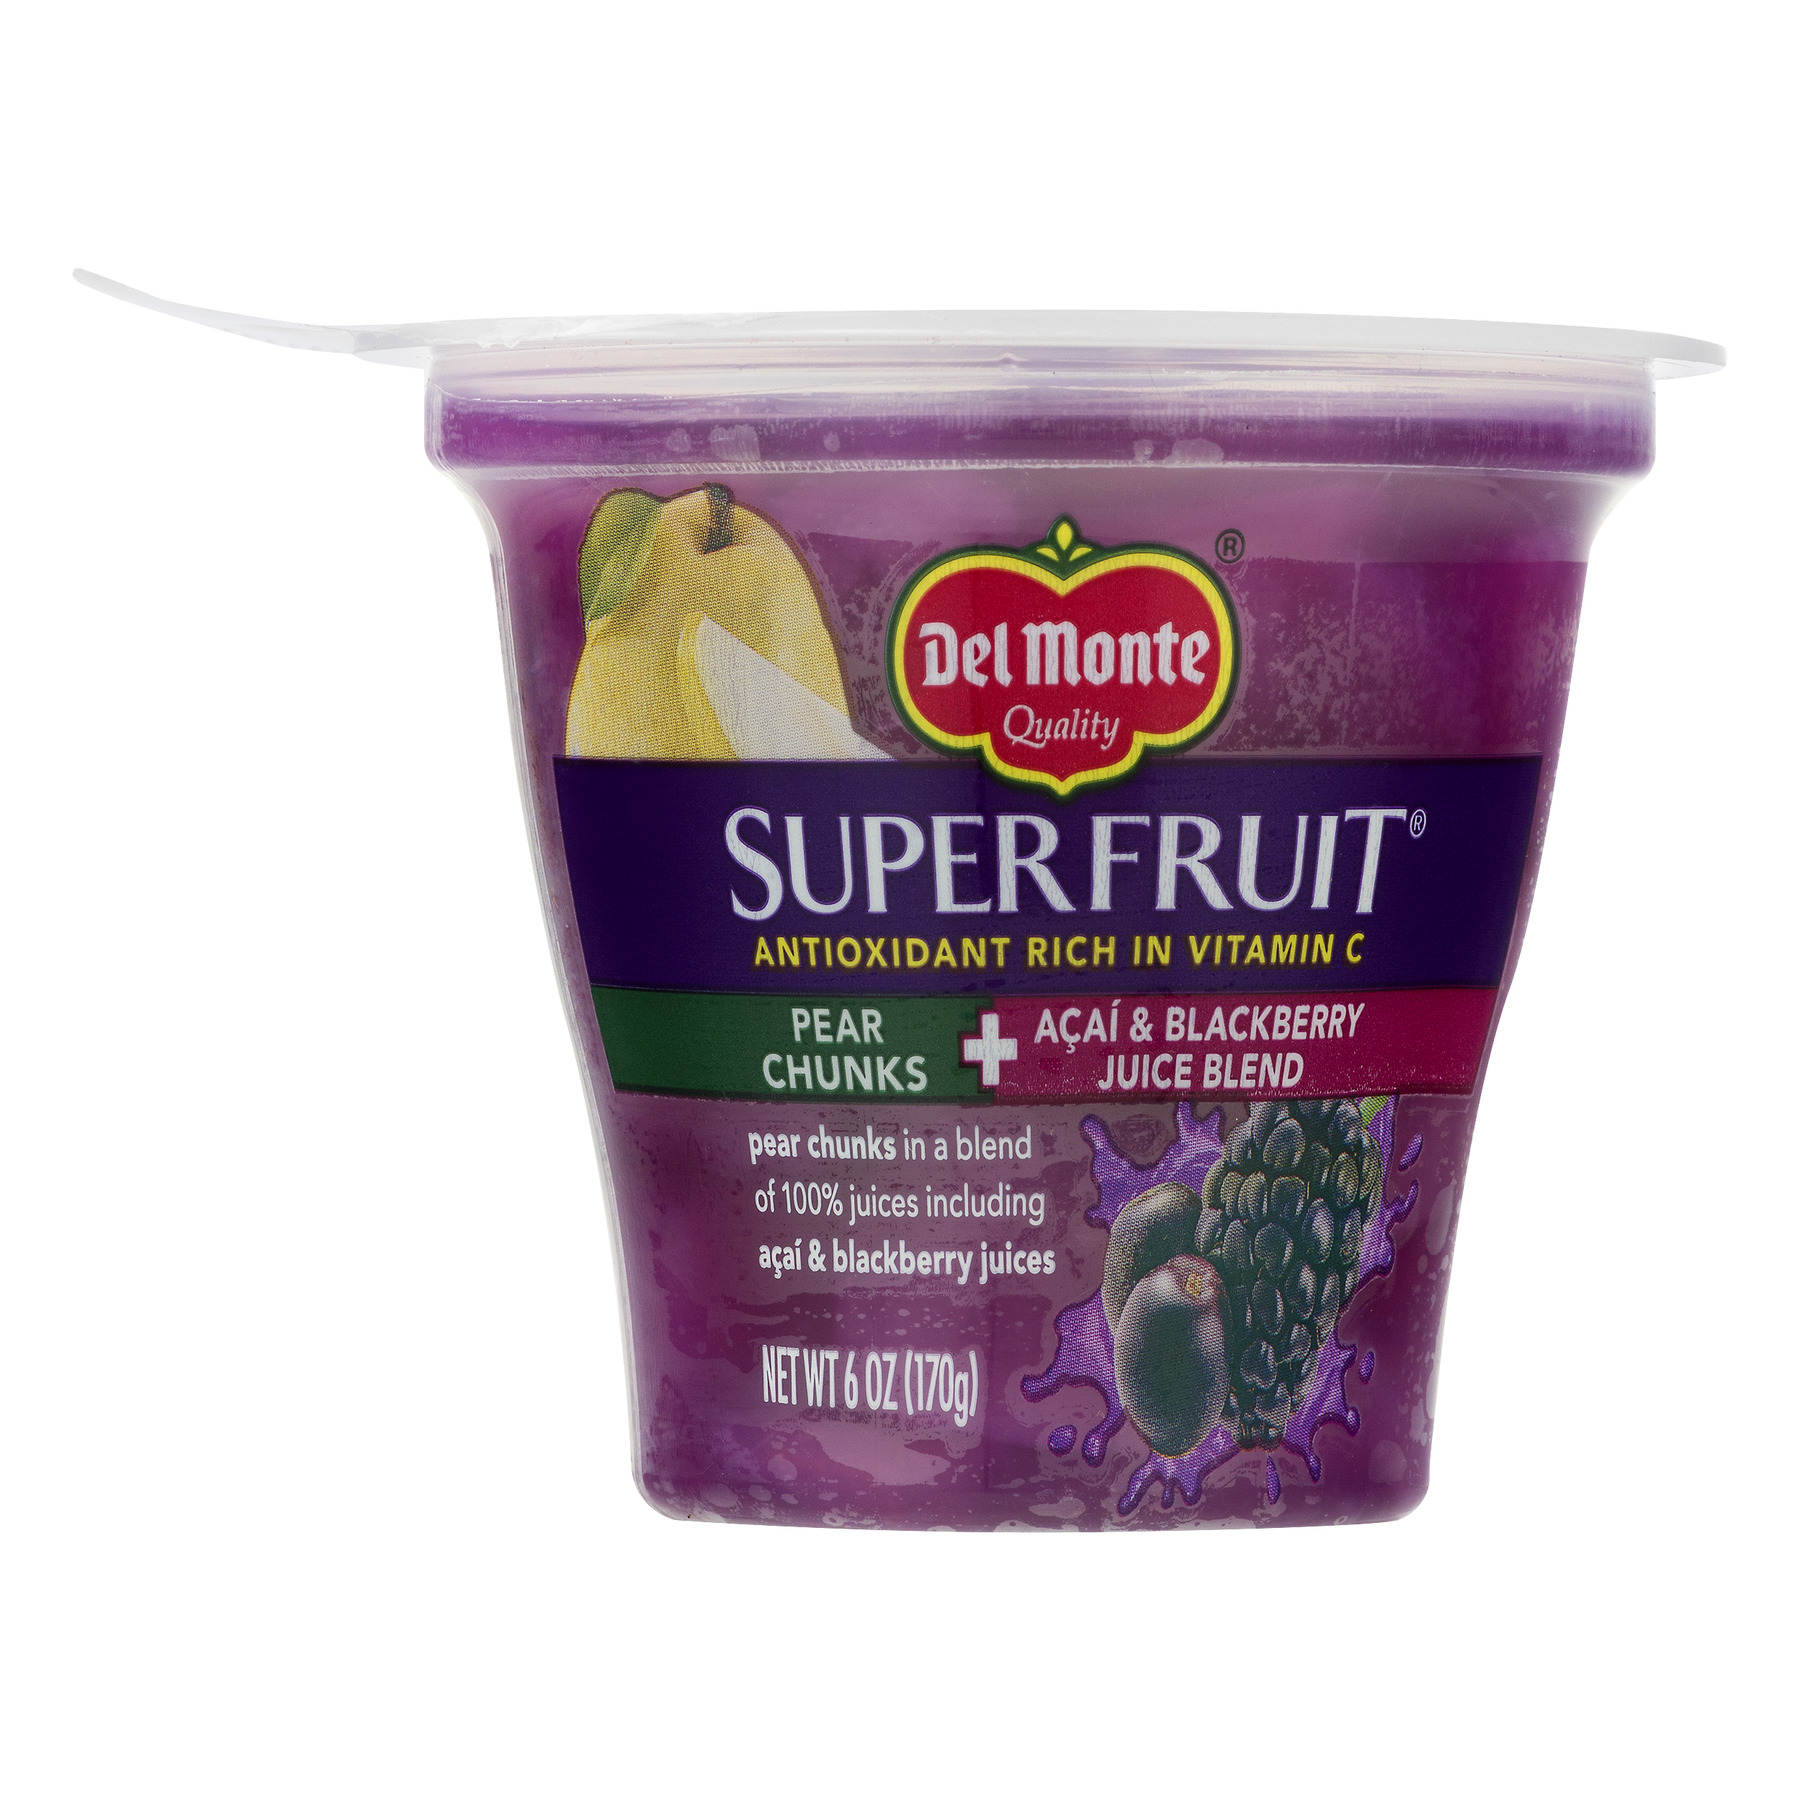 Del Monte SuperFruit Pear Chunks and Acai & Blackberry Juice Blend, 6 oz